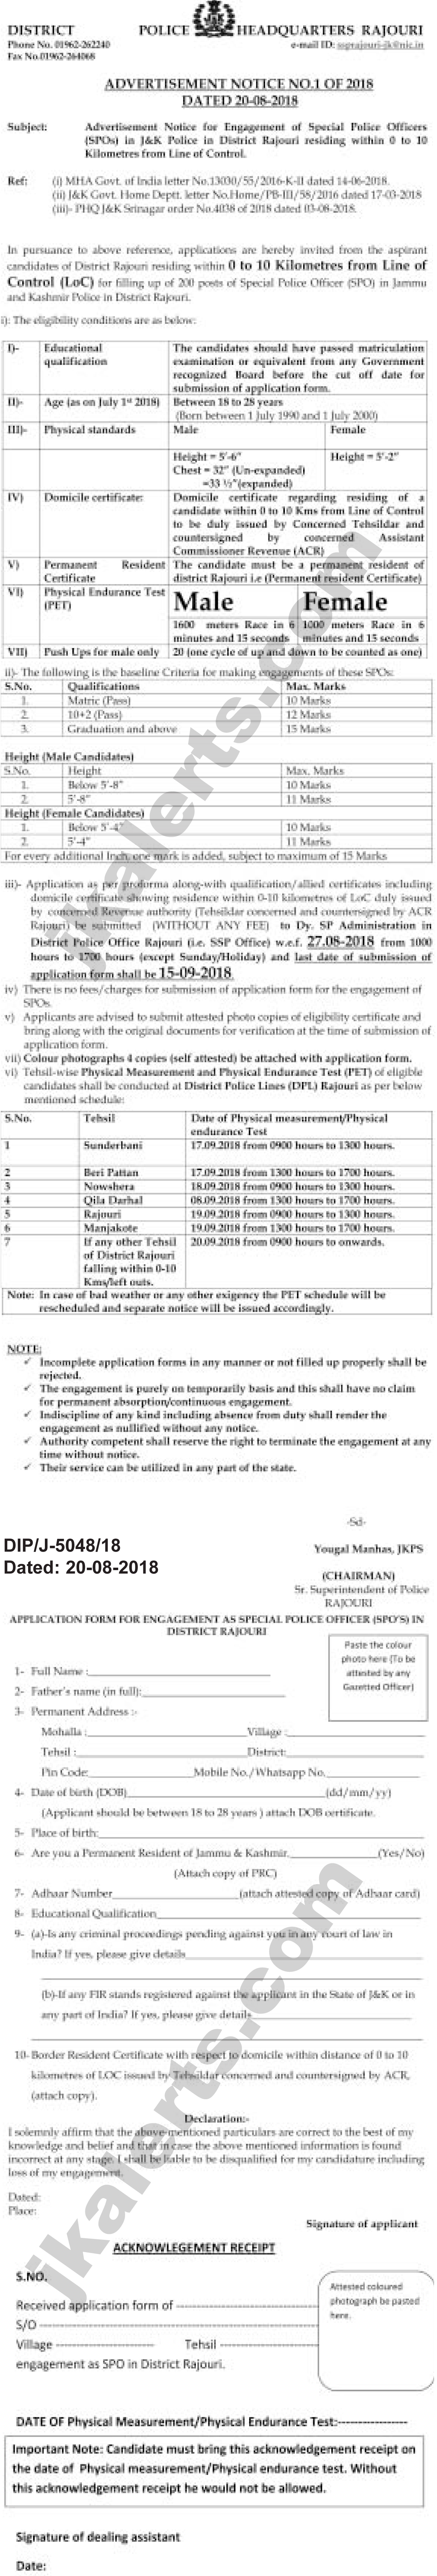 jkpolice-Recruitment-2018-SPO-Posts J K Job Forms on harry potter rowling facts, harry potter rowling quotes, order british empire rowling, letter like, rowling autobiography, biography about rowling,